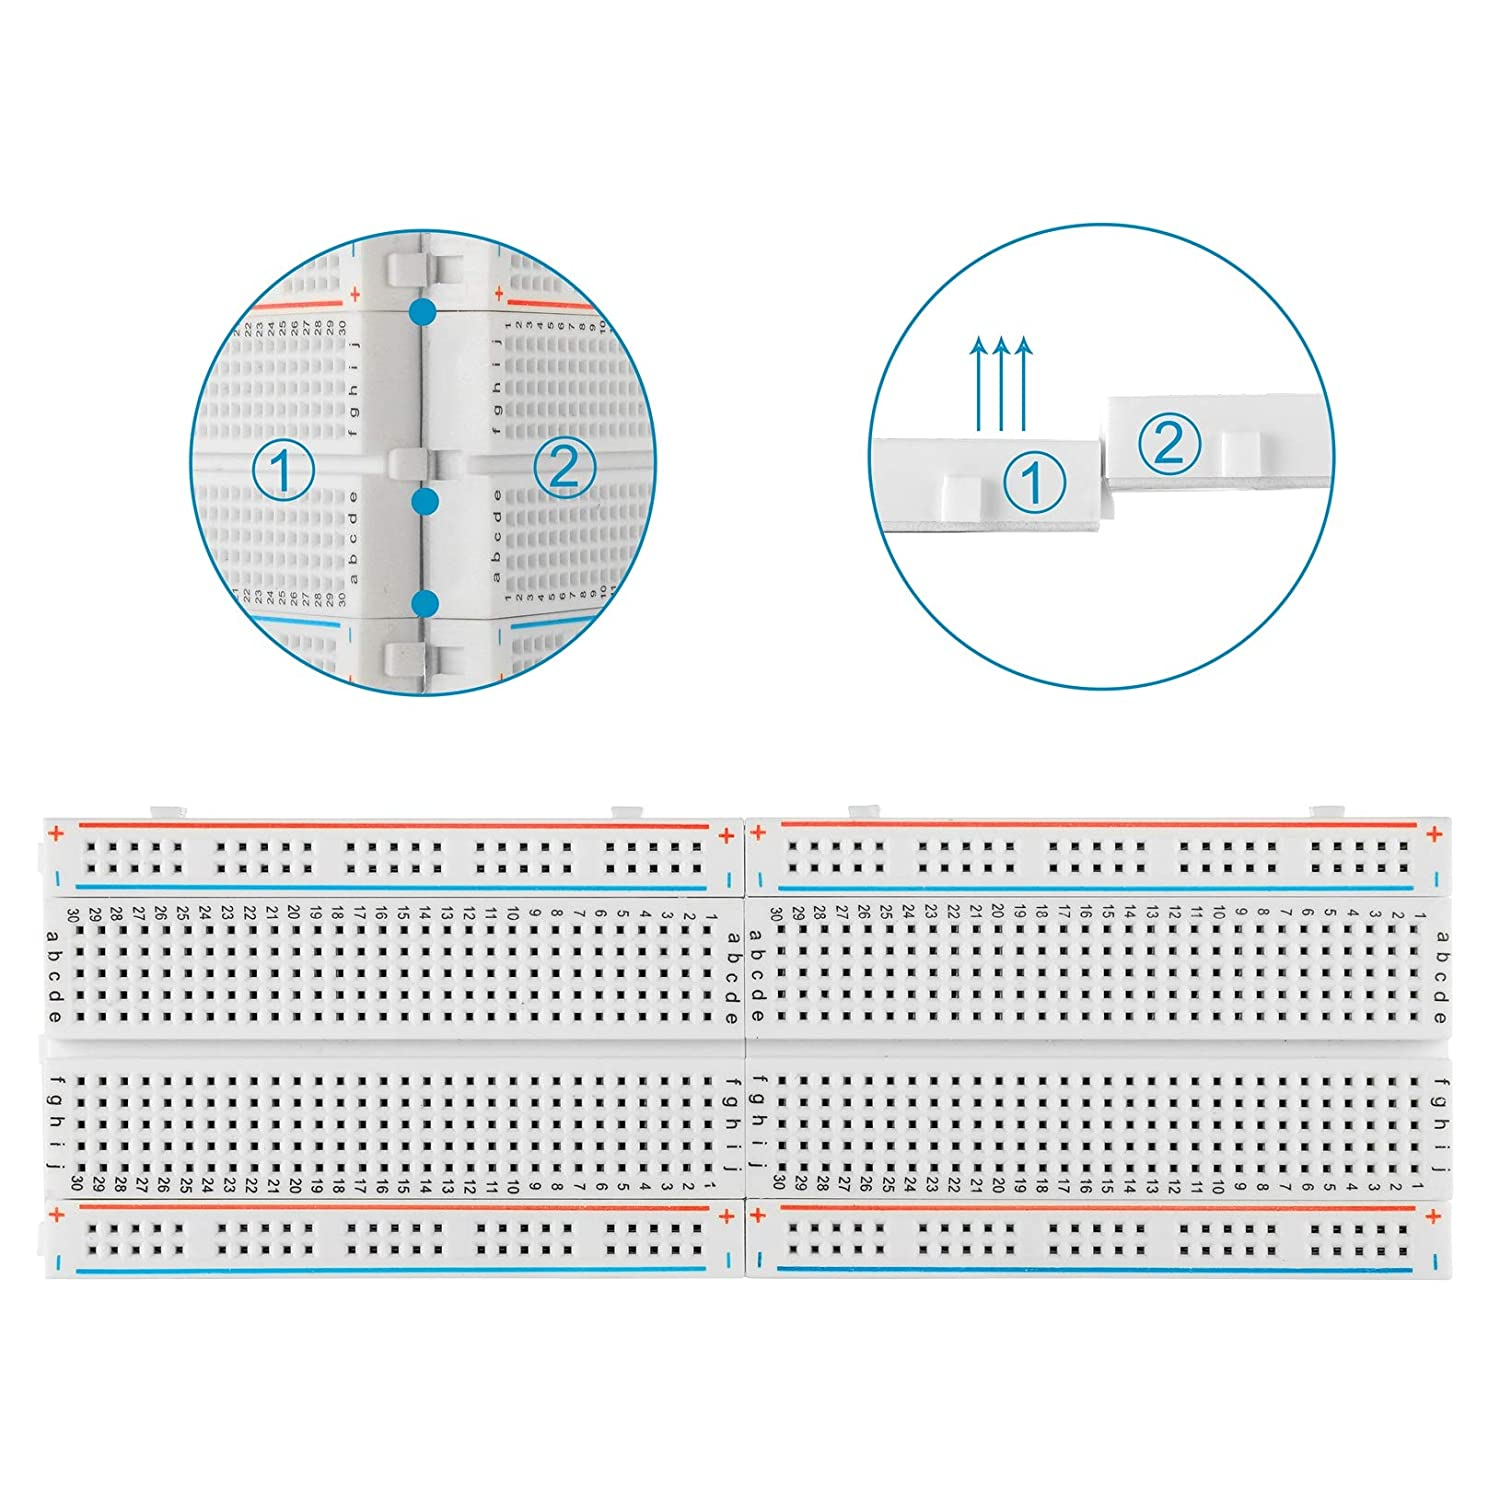 Solderless Breadboard Jumper Wires Set Alldrei Bj 001 400 Pin And Prototyping Wiring Kits Kit With 830